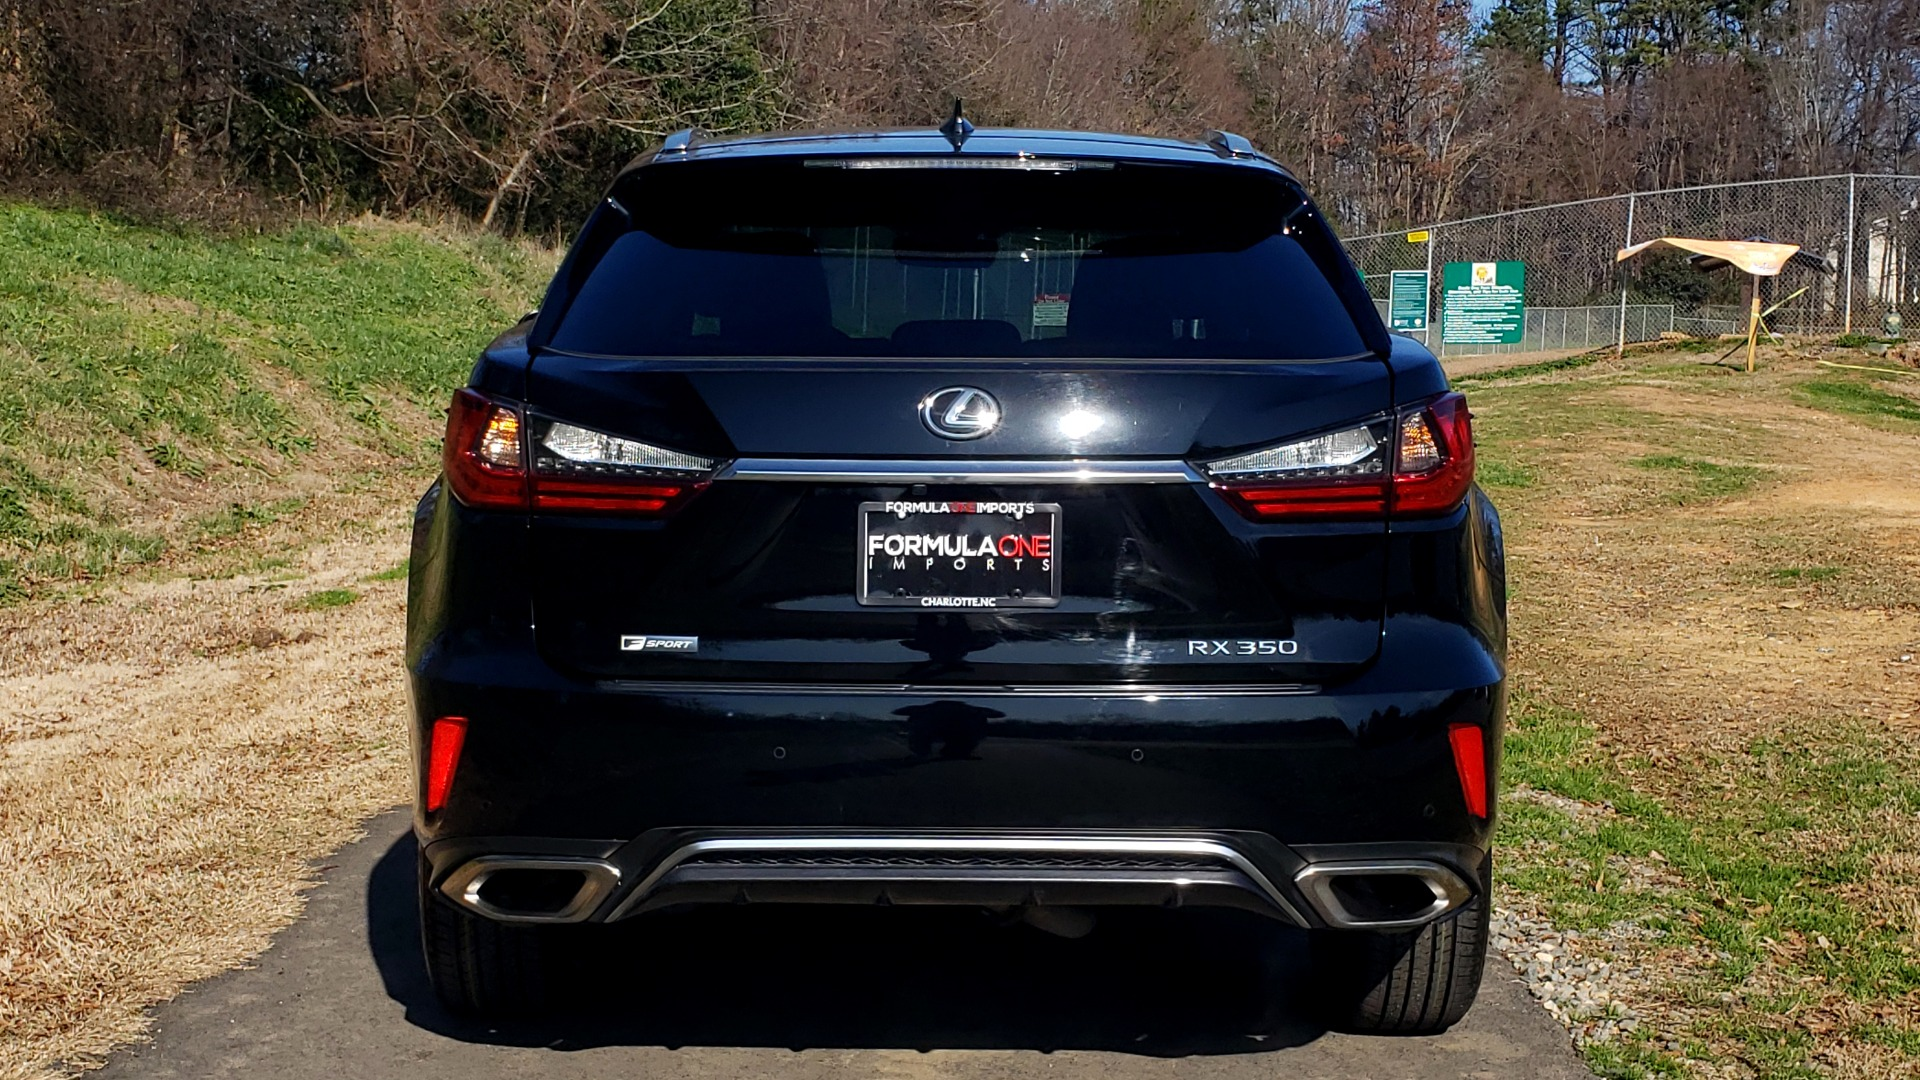 Used 2017 Lexus RX350 AWD F-SPORT / NAV / SUNROOF / BSM / PARK ASST / TOWING / REARVIE for sale Sold at Formula Imports in Charlotte NC 28227 26